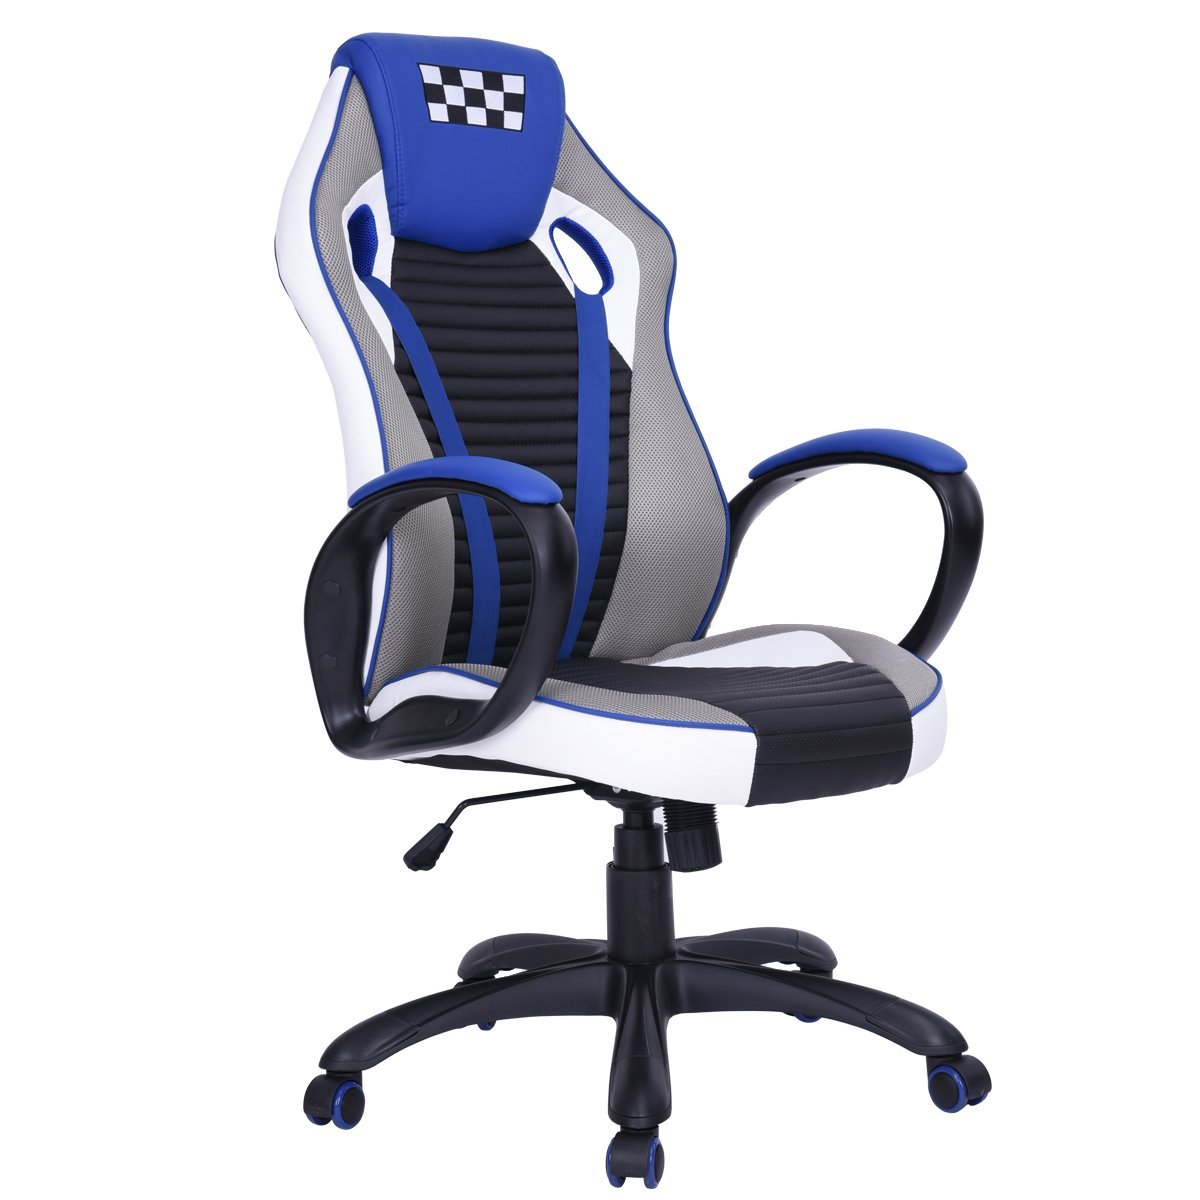 Chairs Cheap 10 Cheap Gaming Chairs Under 100 Gaming Chair Pro